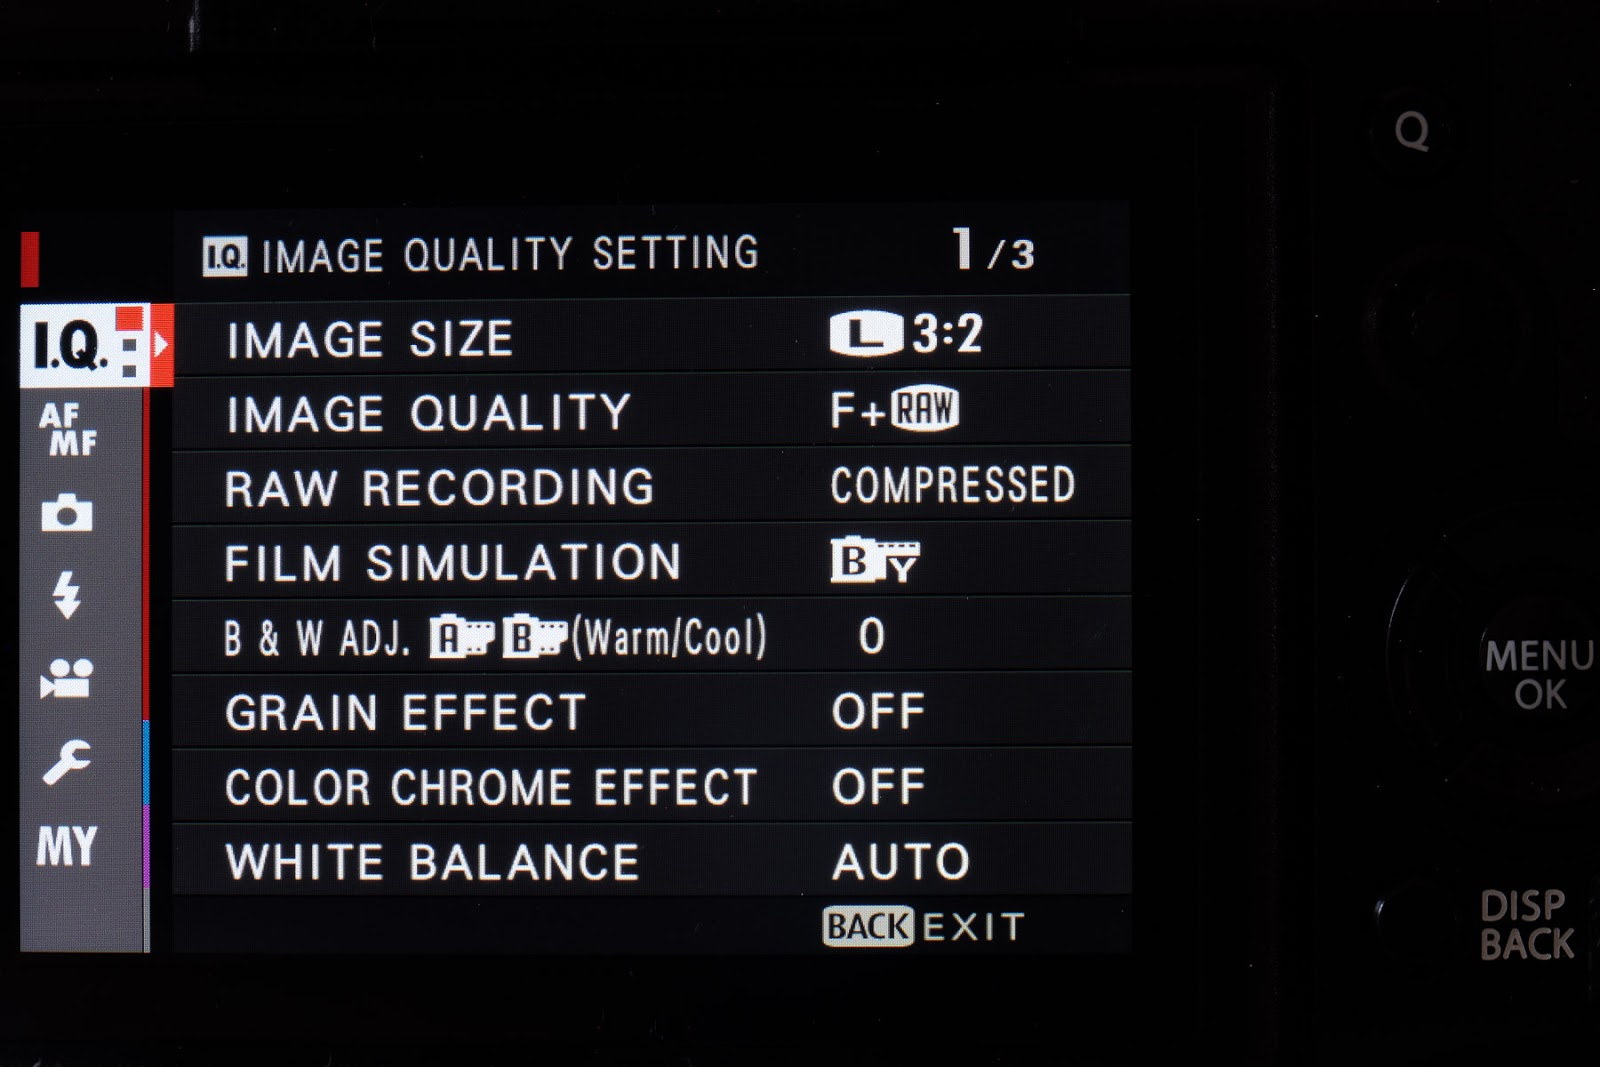 Björn Moerman PHOTOGRAPHY: FIRST LOOK REVIEW: FUJIFILM X-T3